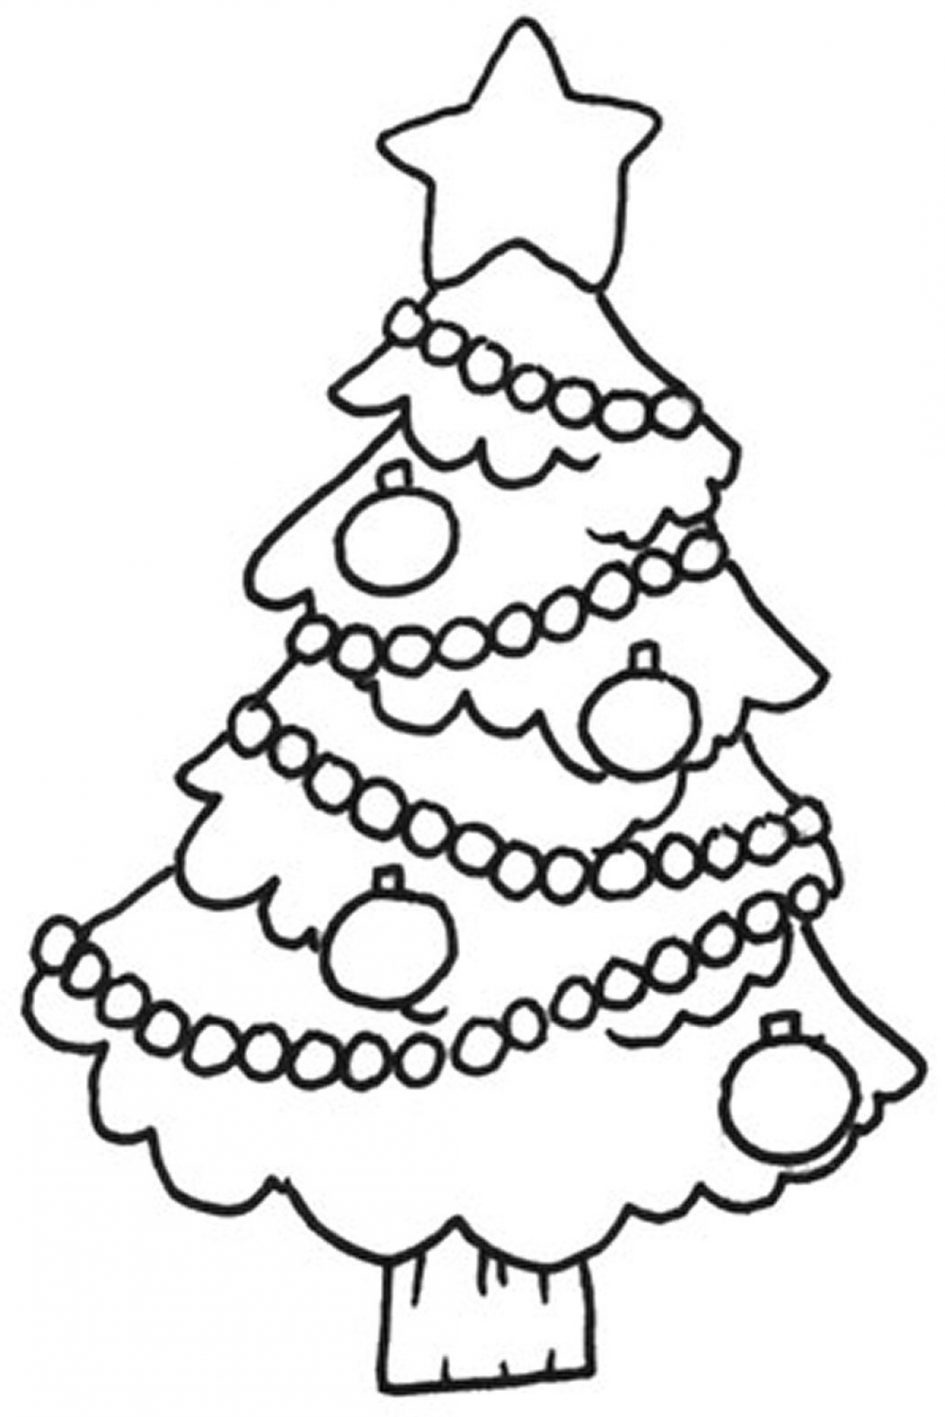 945x1417 Download Coloring Pages. Coloring Pages For Christmas Tree